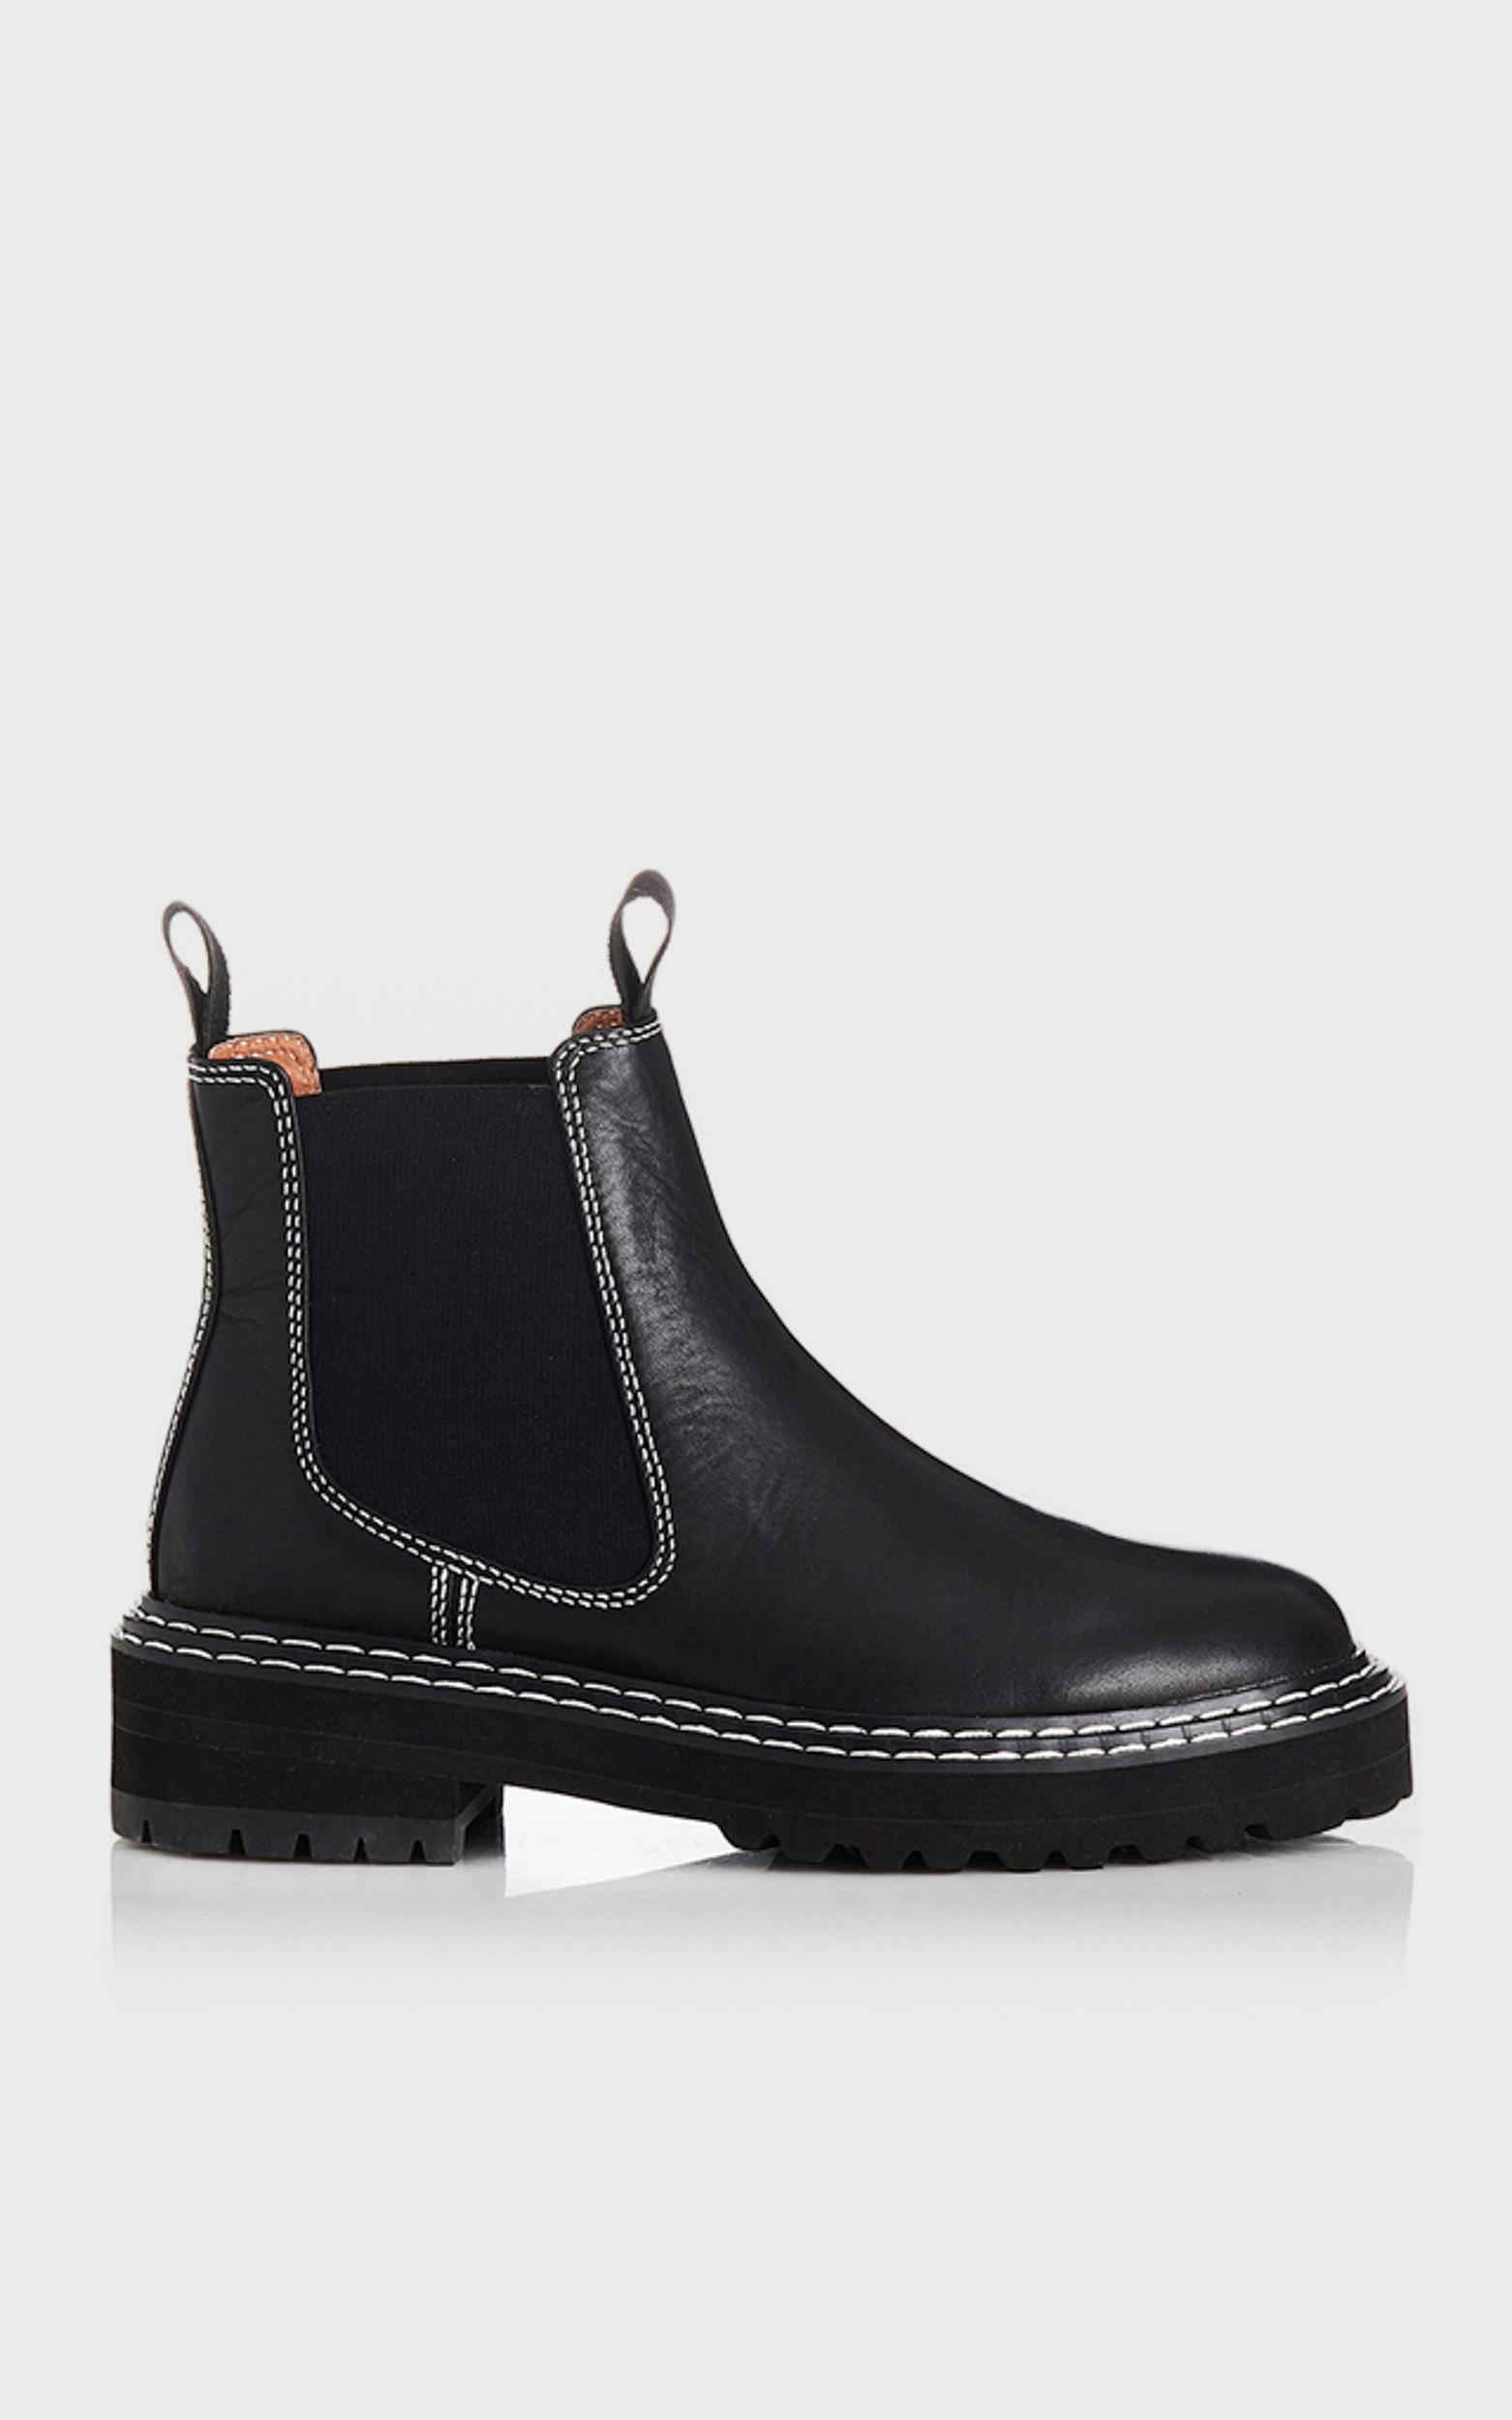 Alias Mae - Rome Boots in Black Burnished - 5.5, BLK2, hi-res image number null